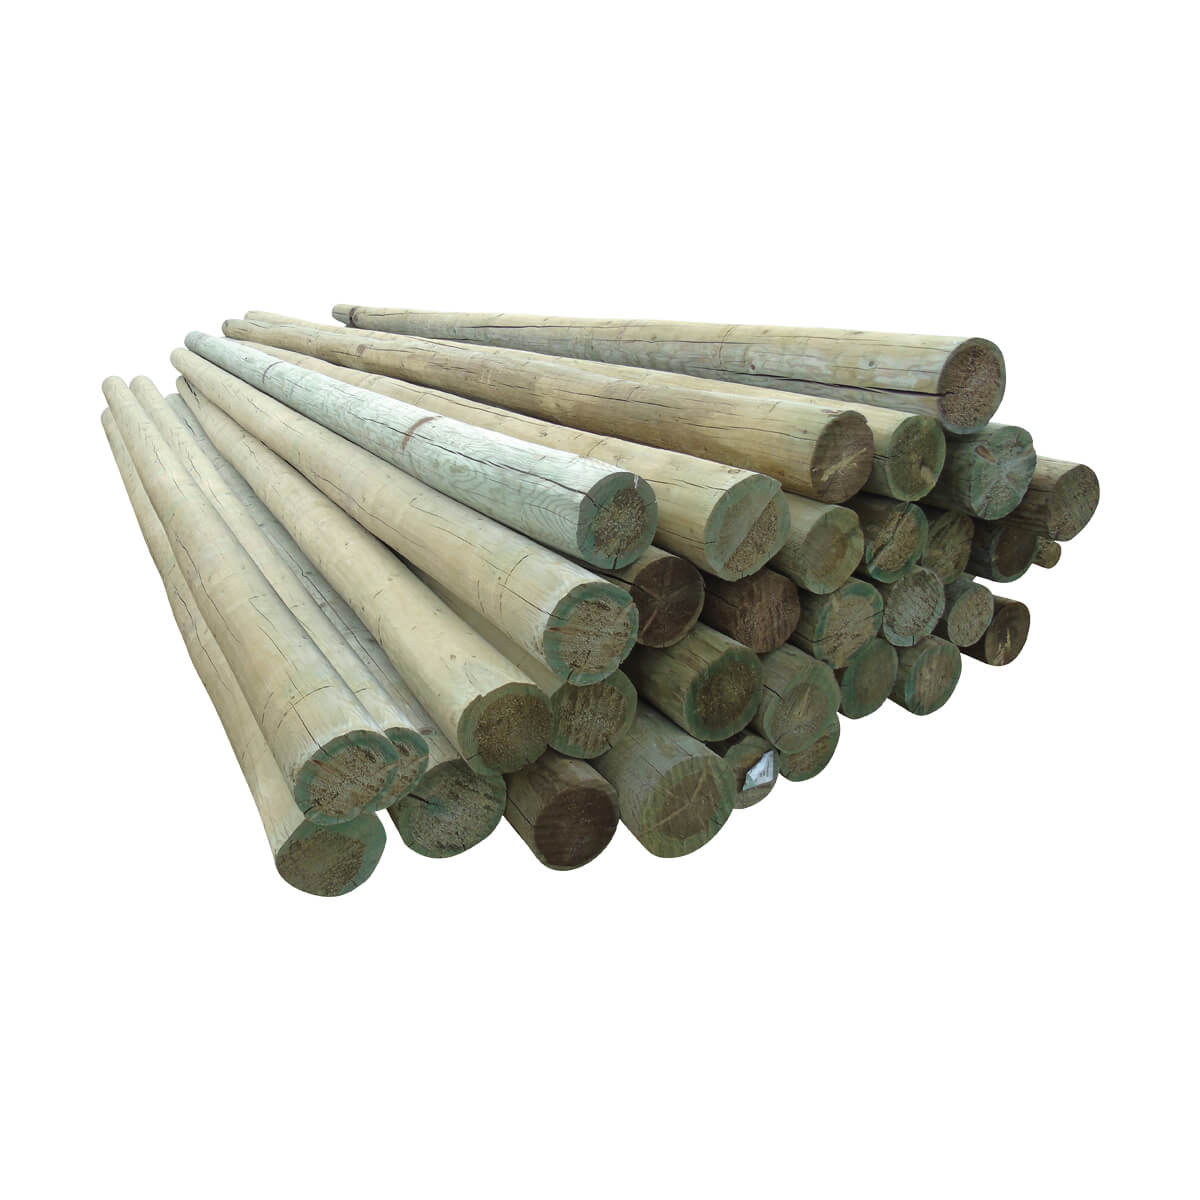 Peeled Fence Poles - Blunt - 6-in x 8-ft